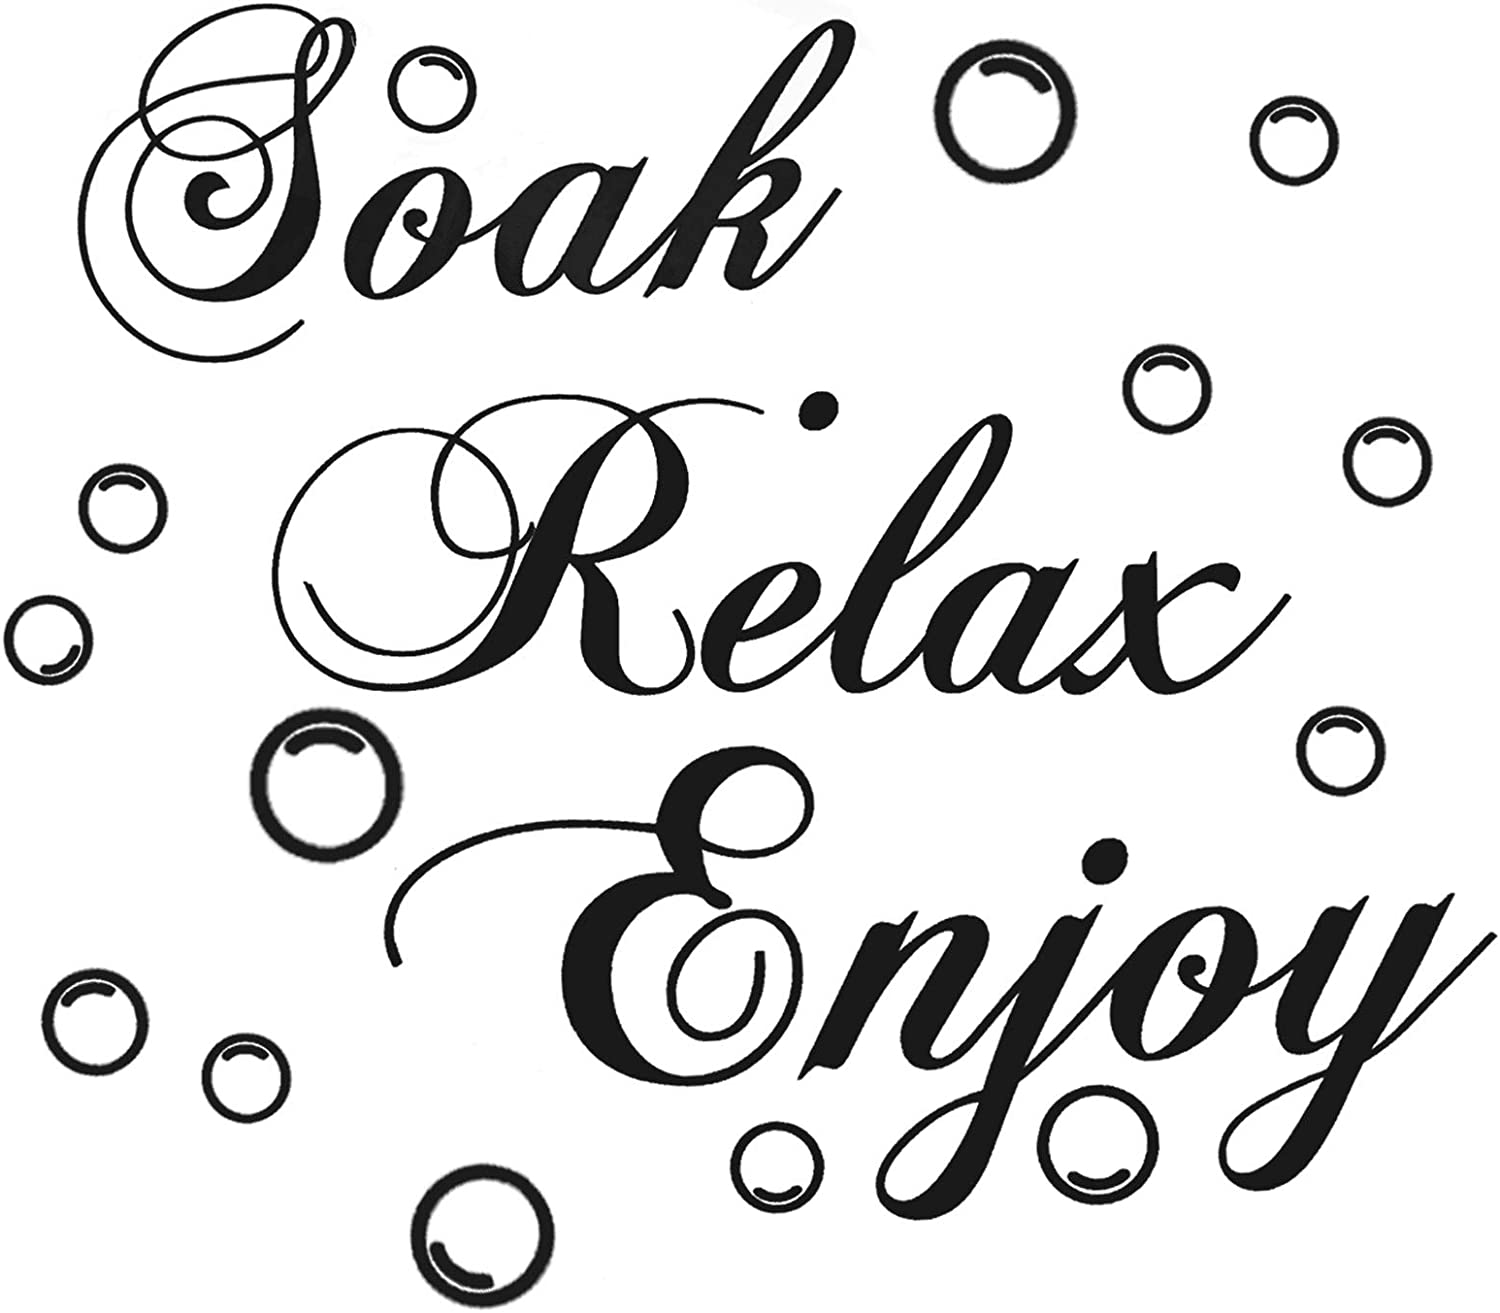 funvce Bathroom Wall Decals Soak Relax Enjoy Stickers,Wall Art Decal Quotes Stickers,Beautiful Art Words Decor for Home Bedroom Living Room (17.7x11.4 inch)